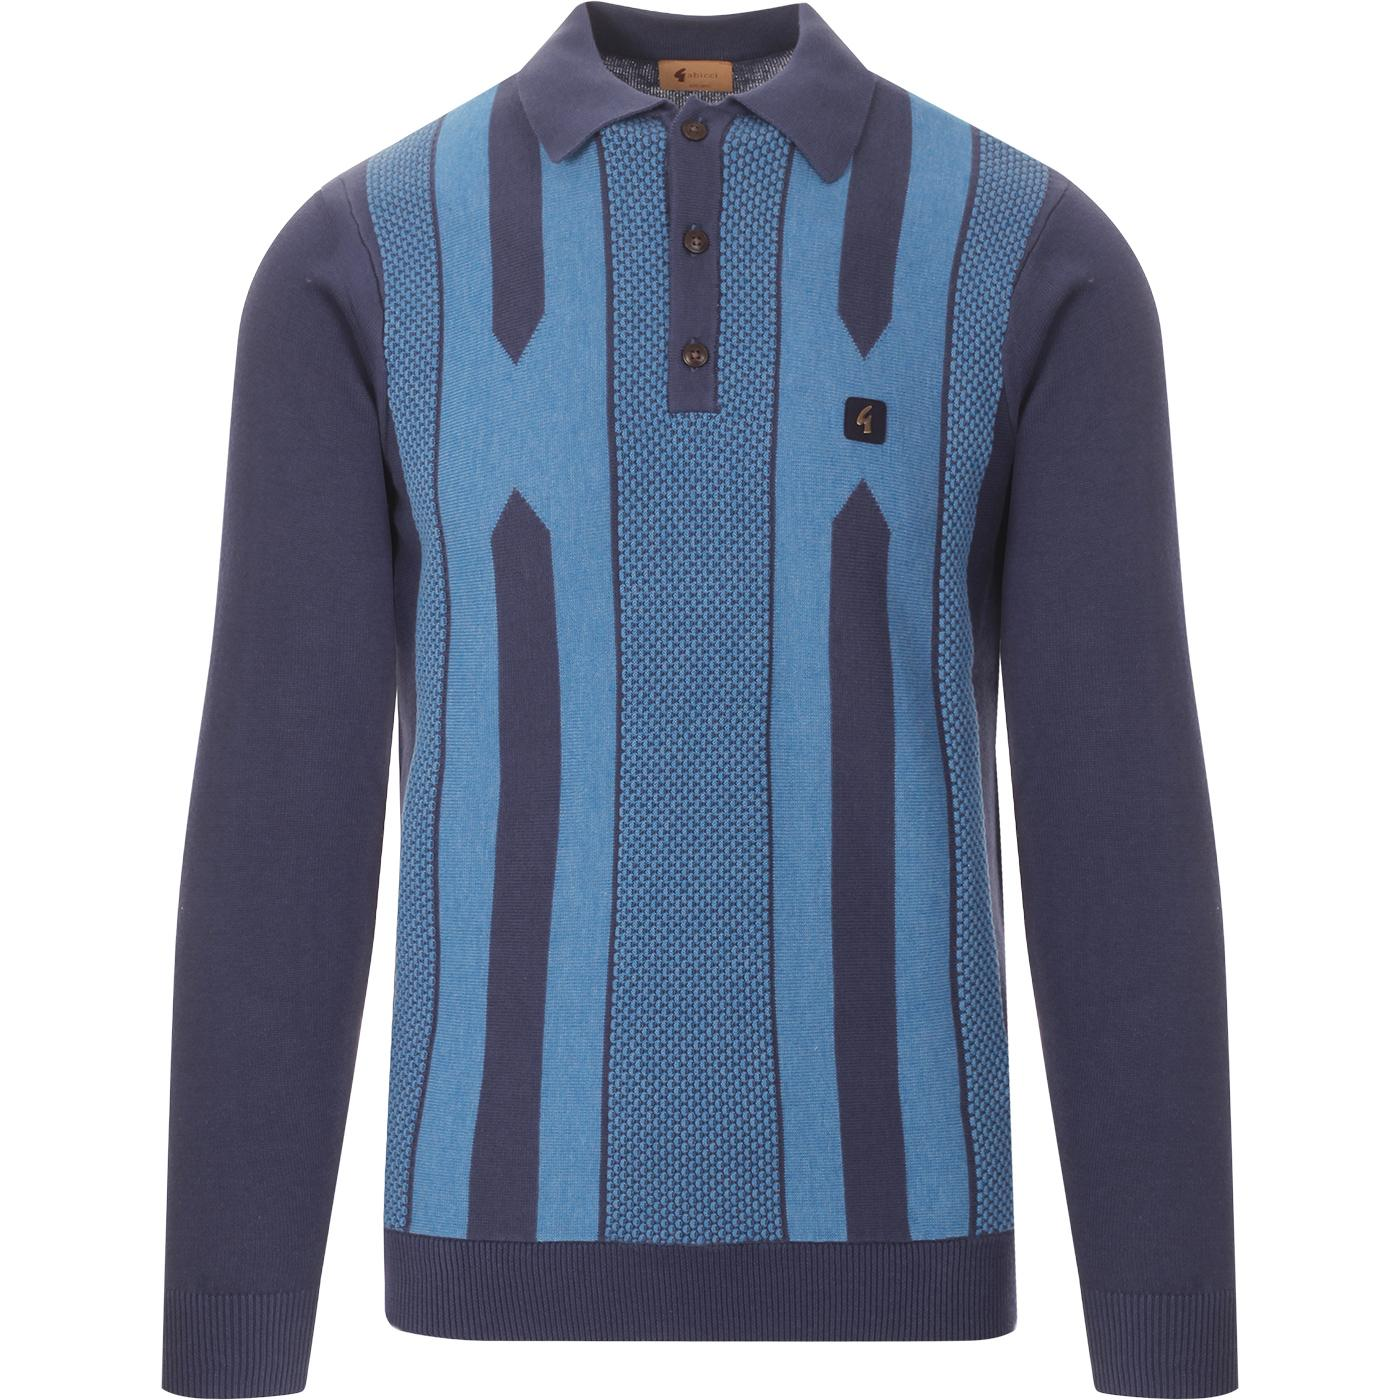 Cooper GABICCI VINTAGE Retro 80s Knitted Polo T